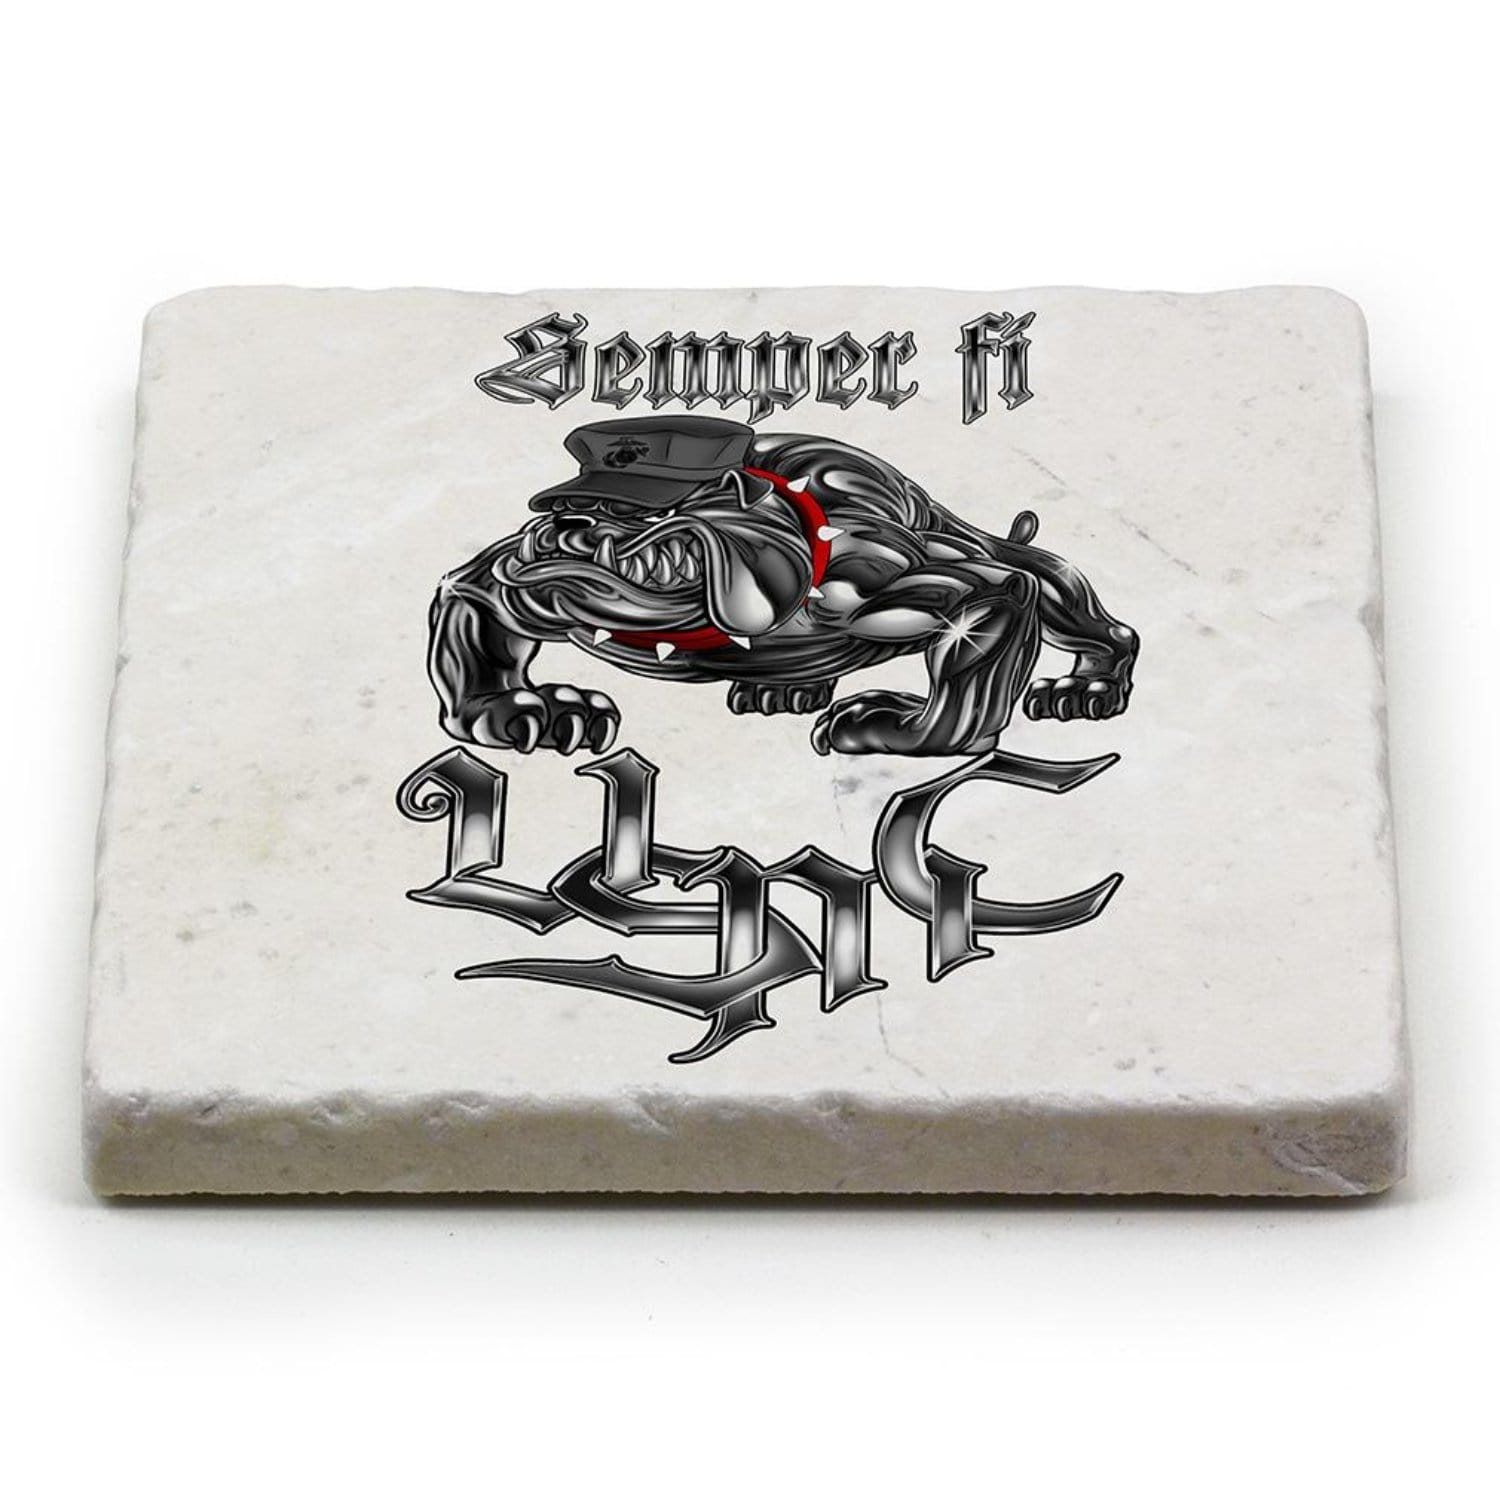 Semper Fi Chrome Dog Marine Corps Coaster Ivory